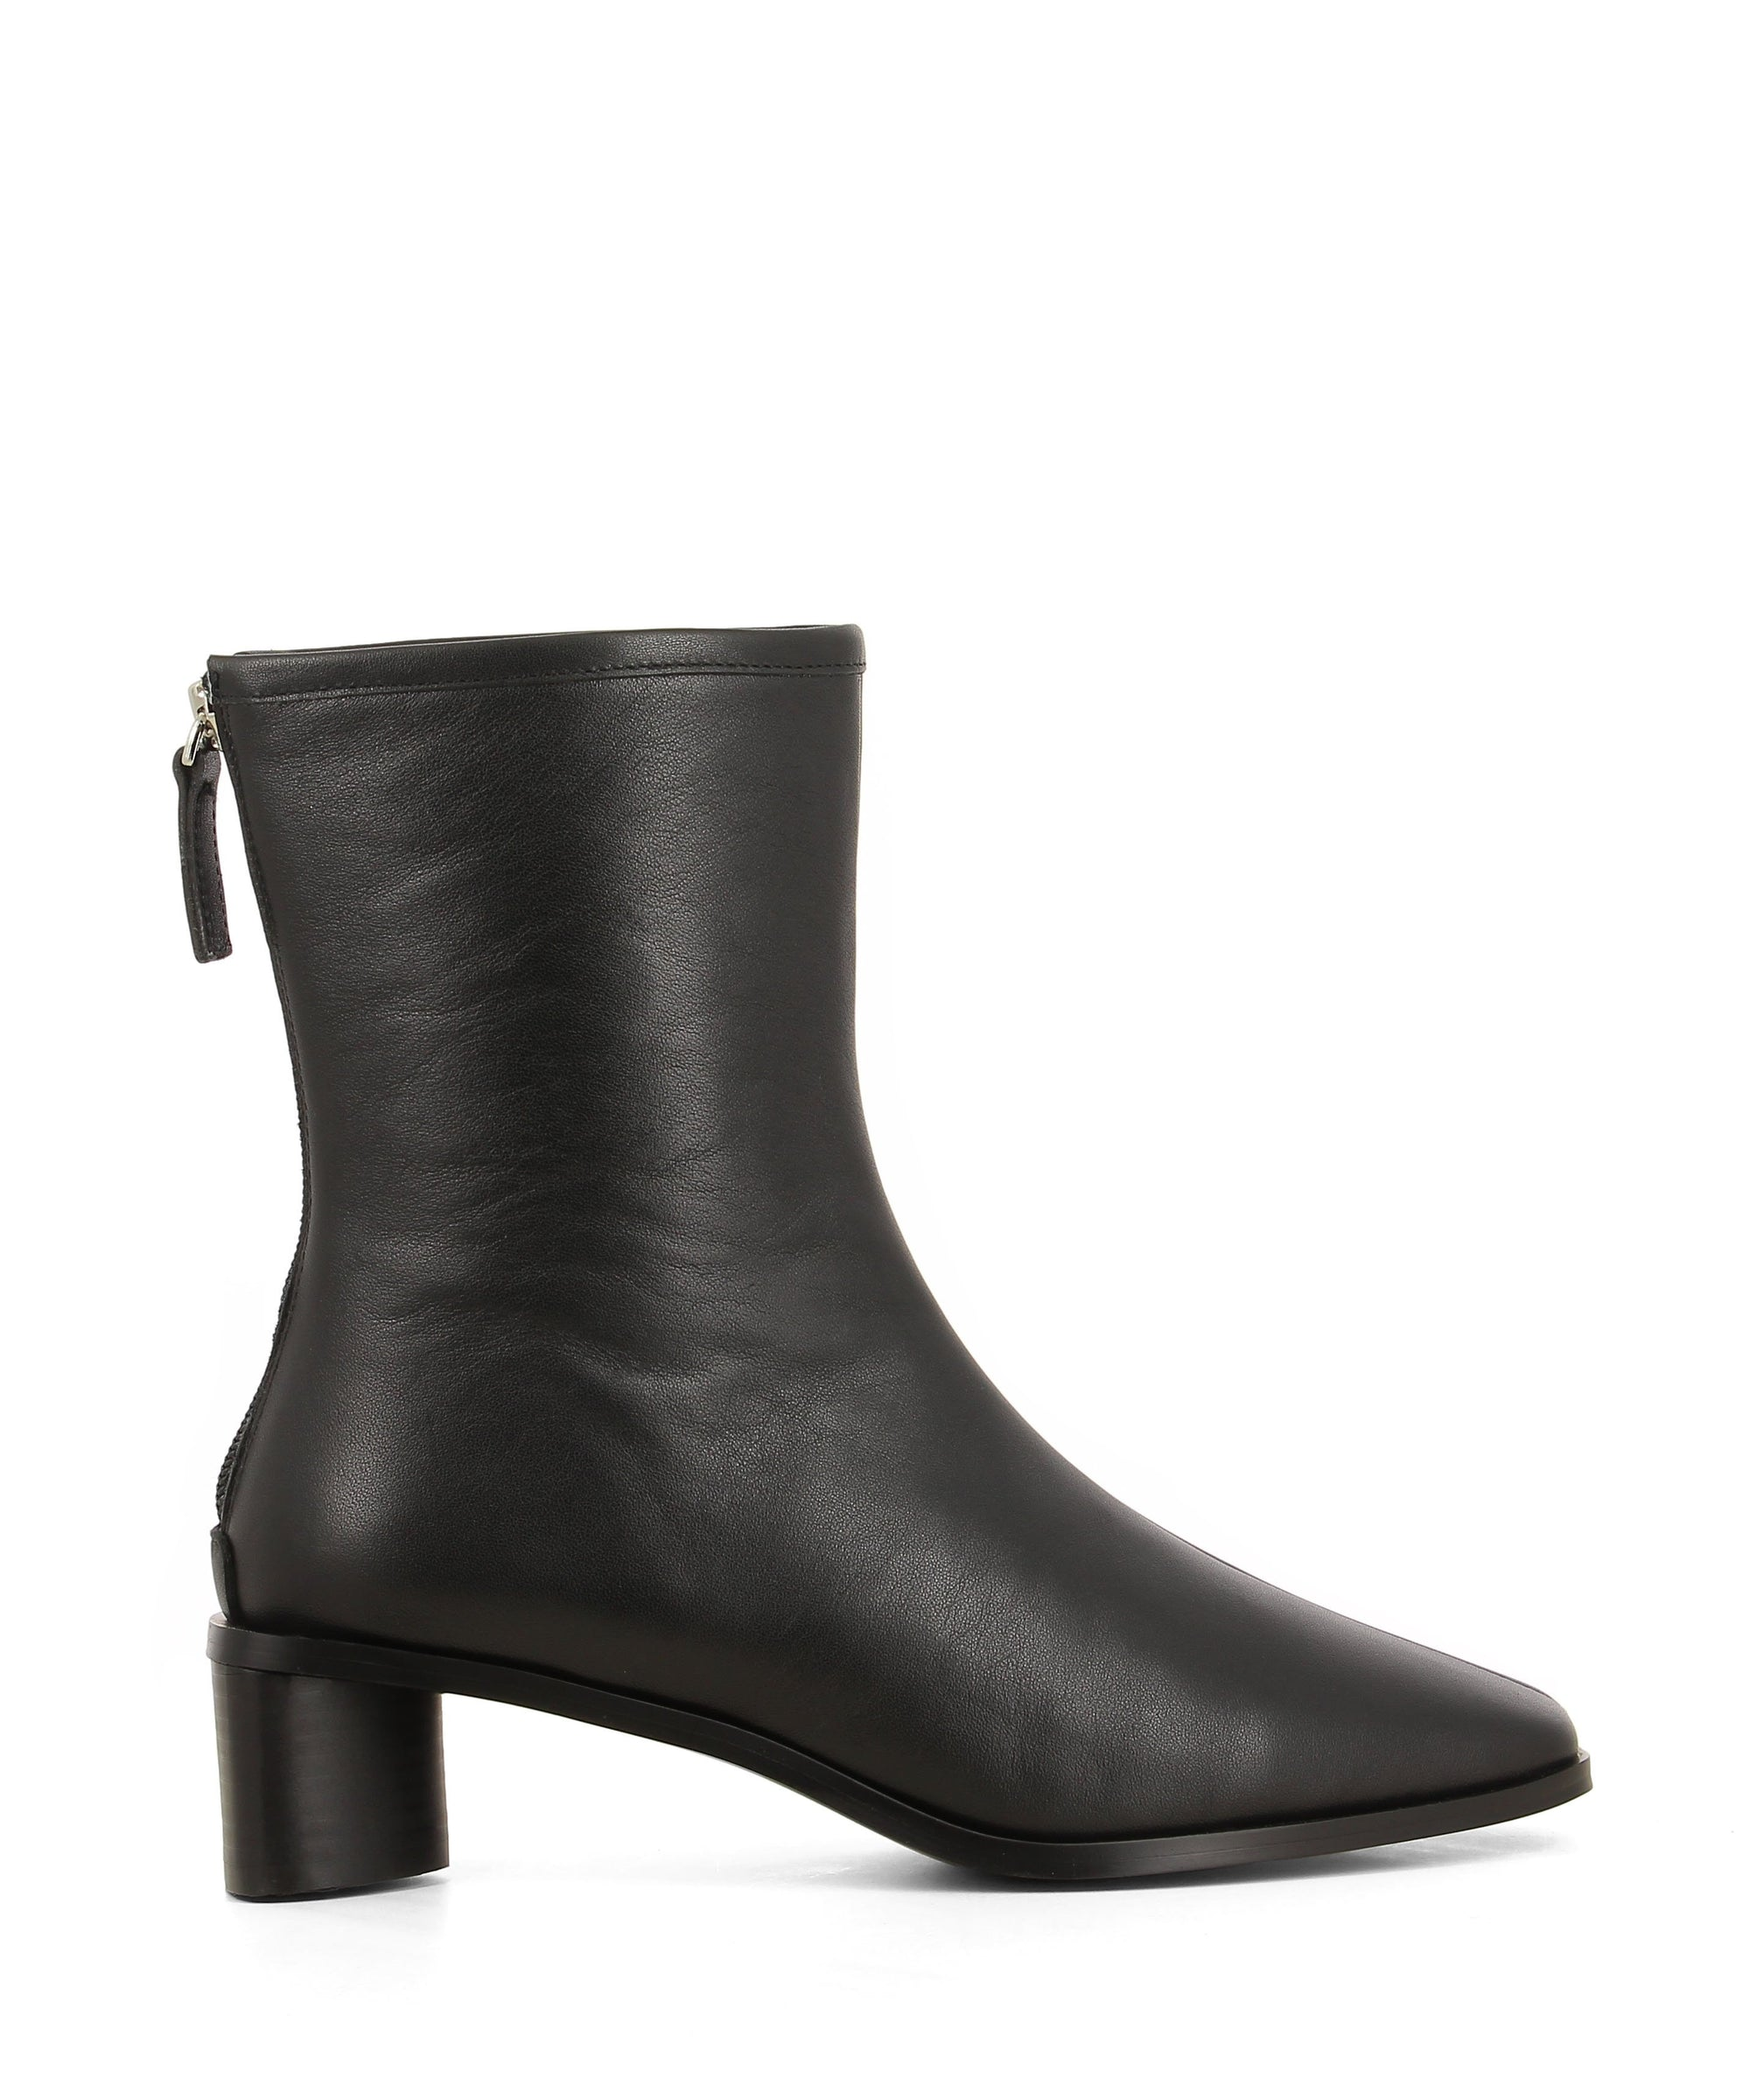 Sleek black leather ankle boots featuring zipper fastenings, seam detailing on the upper, a low block heel and a square toe by 2 Baia Vista.